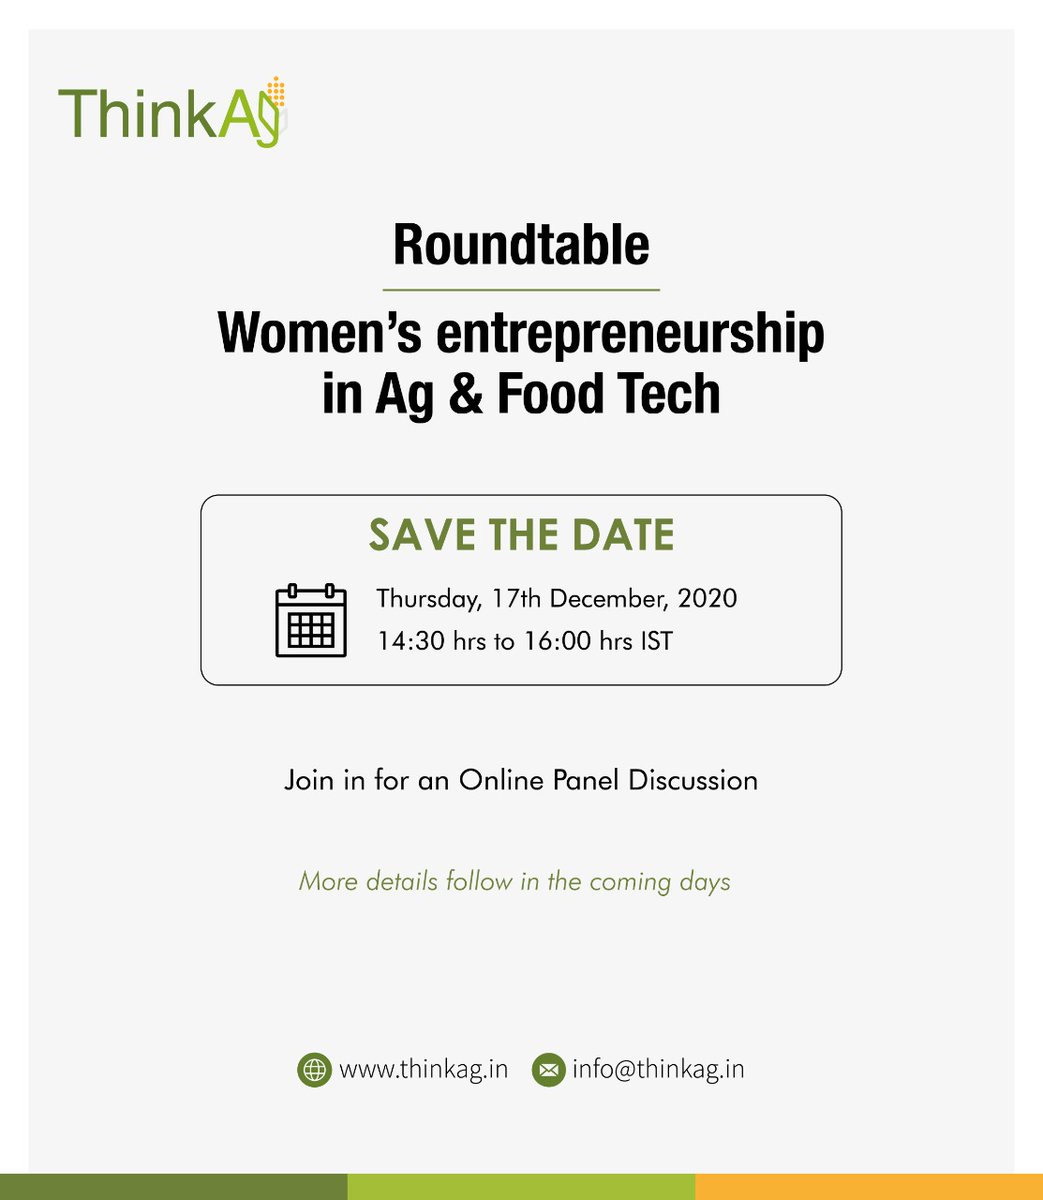 """Happy to announce that @ag_think will be hosting a Roundtable- """"Women's entrepreneurship in Ag & Food Tech"""" on Thursday, 17th Dec 2020; 14:30 hrs to 16:00 hrs IST  Join in for an online Panel Discussion  SAVE THE DATE  More details will follow soon https://t.co/8ejWyA2GTG"""